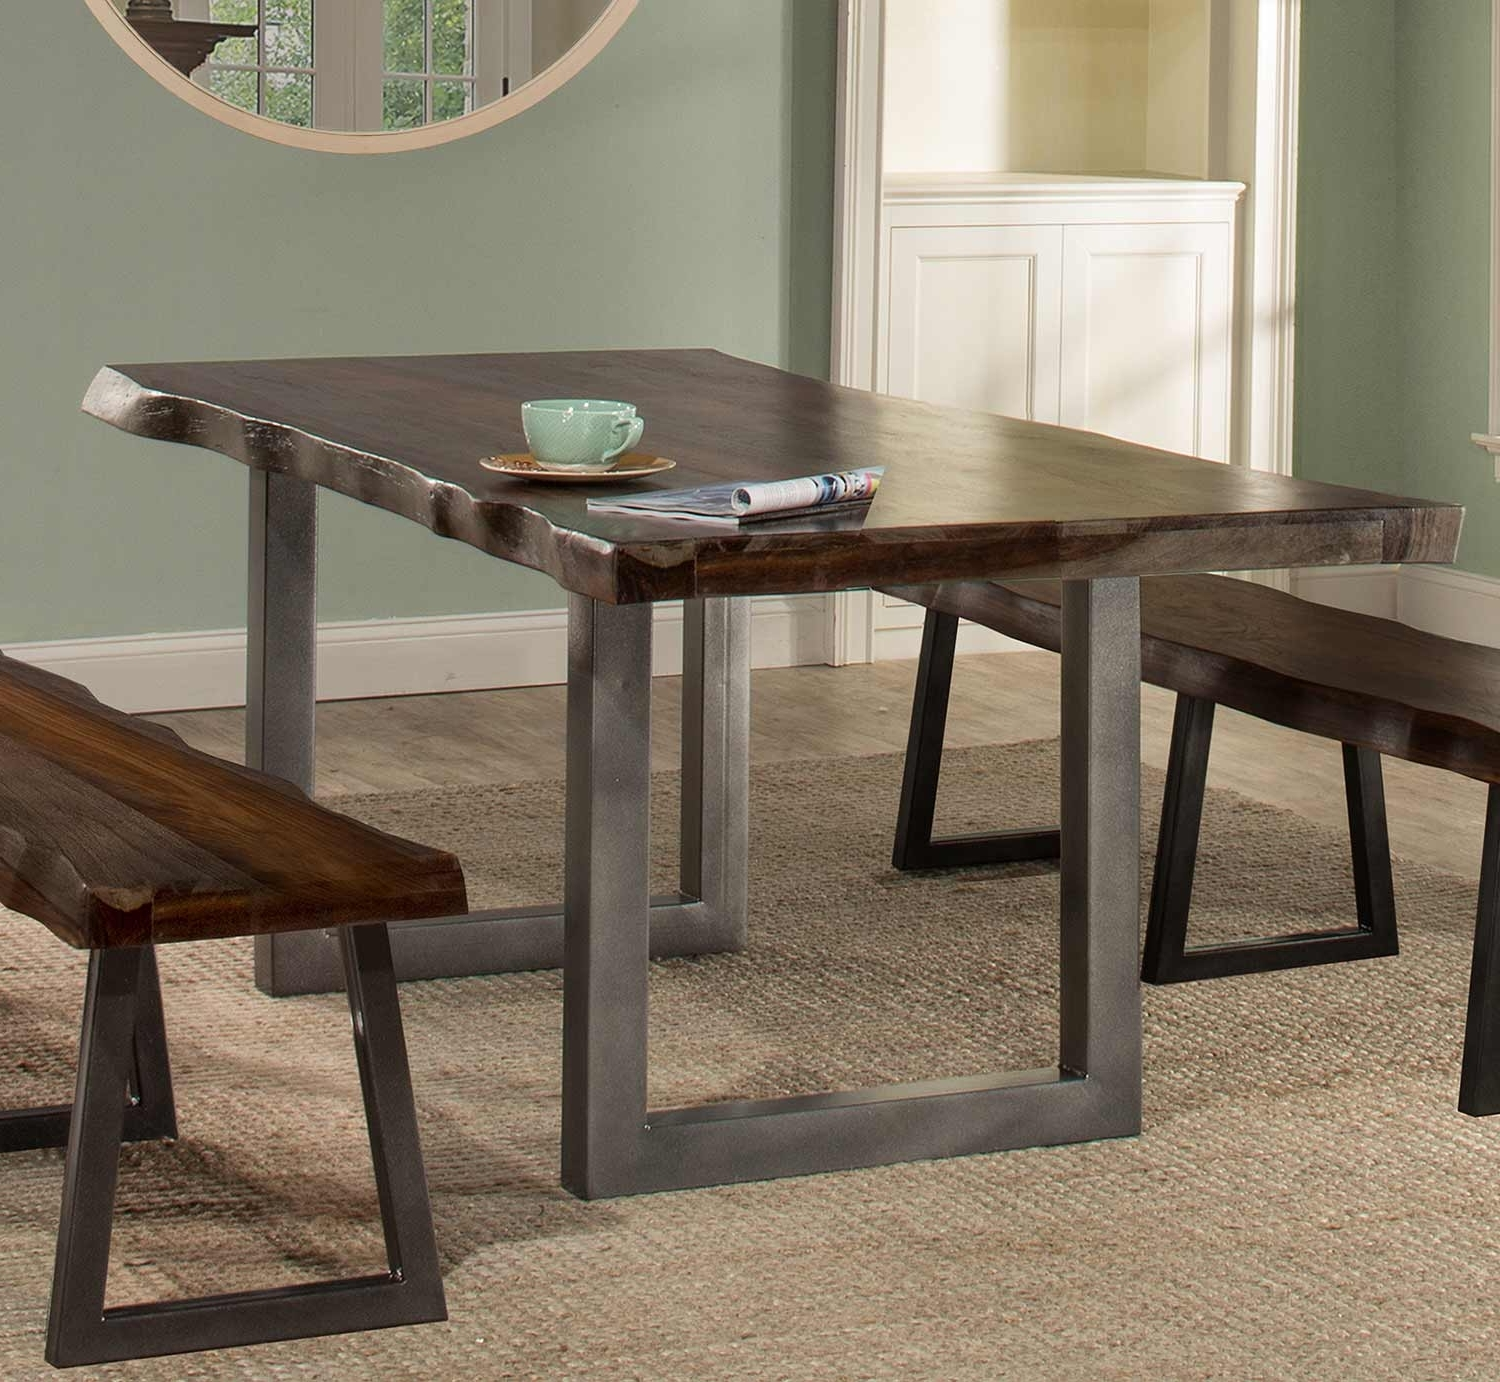 Hillsdale Emerson Rectangle Dining Table – Gray Sheesham 5925Dt In Latest Sheesham Dining Tables (View 7 of 25)